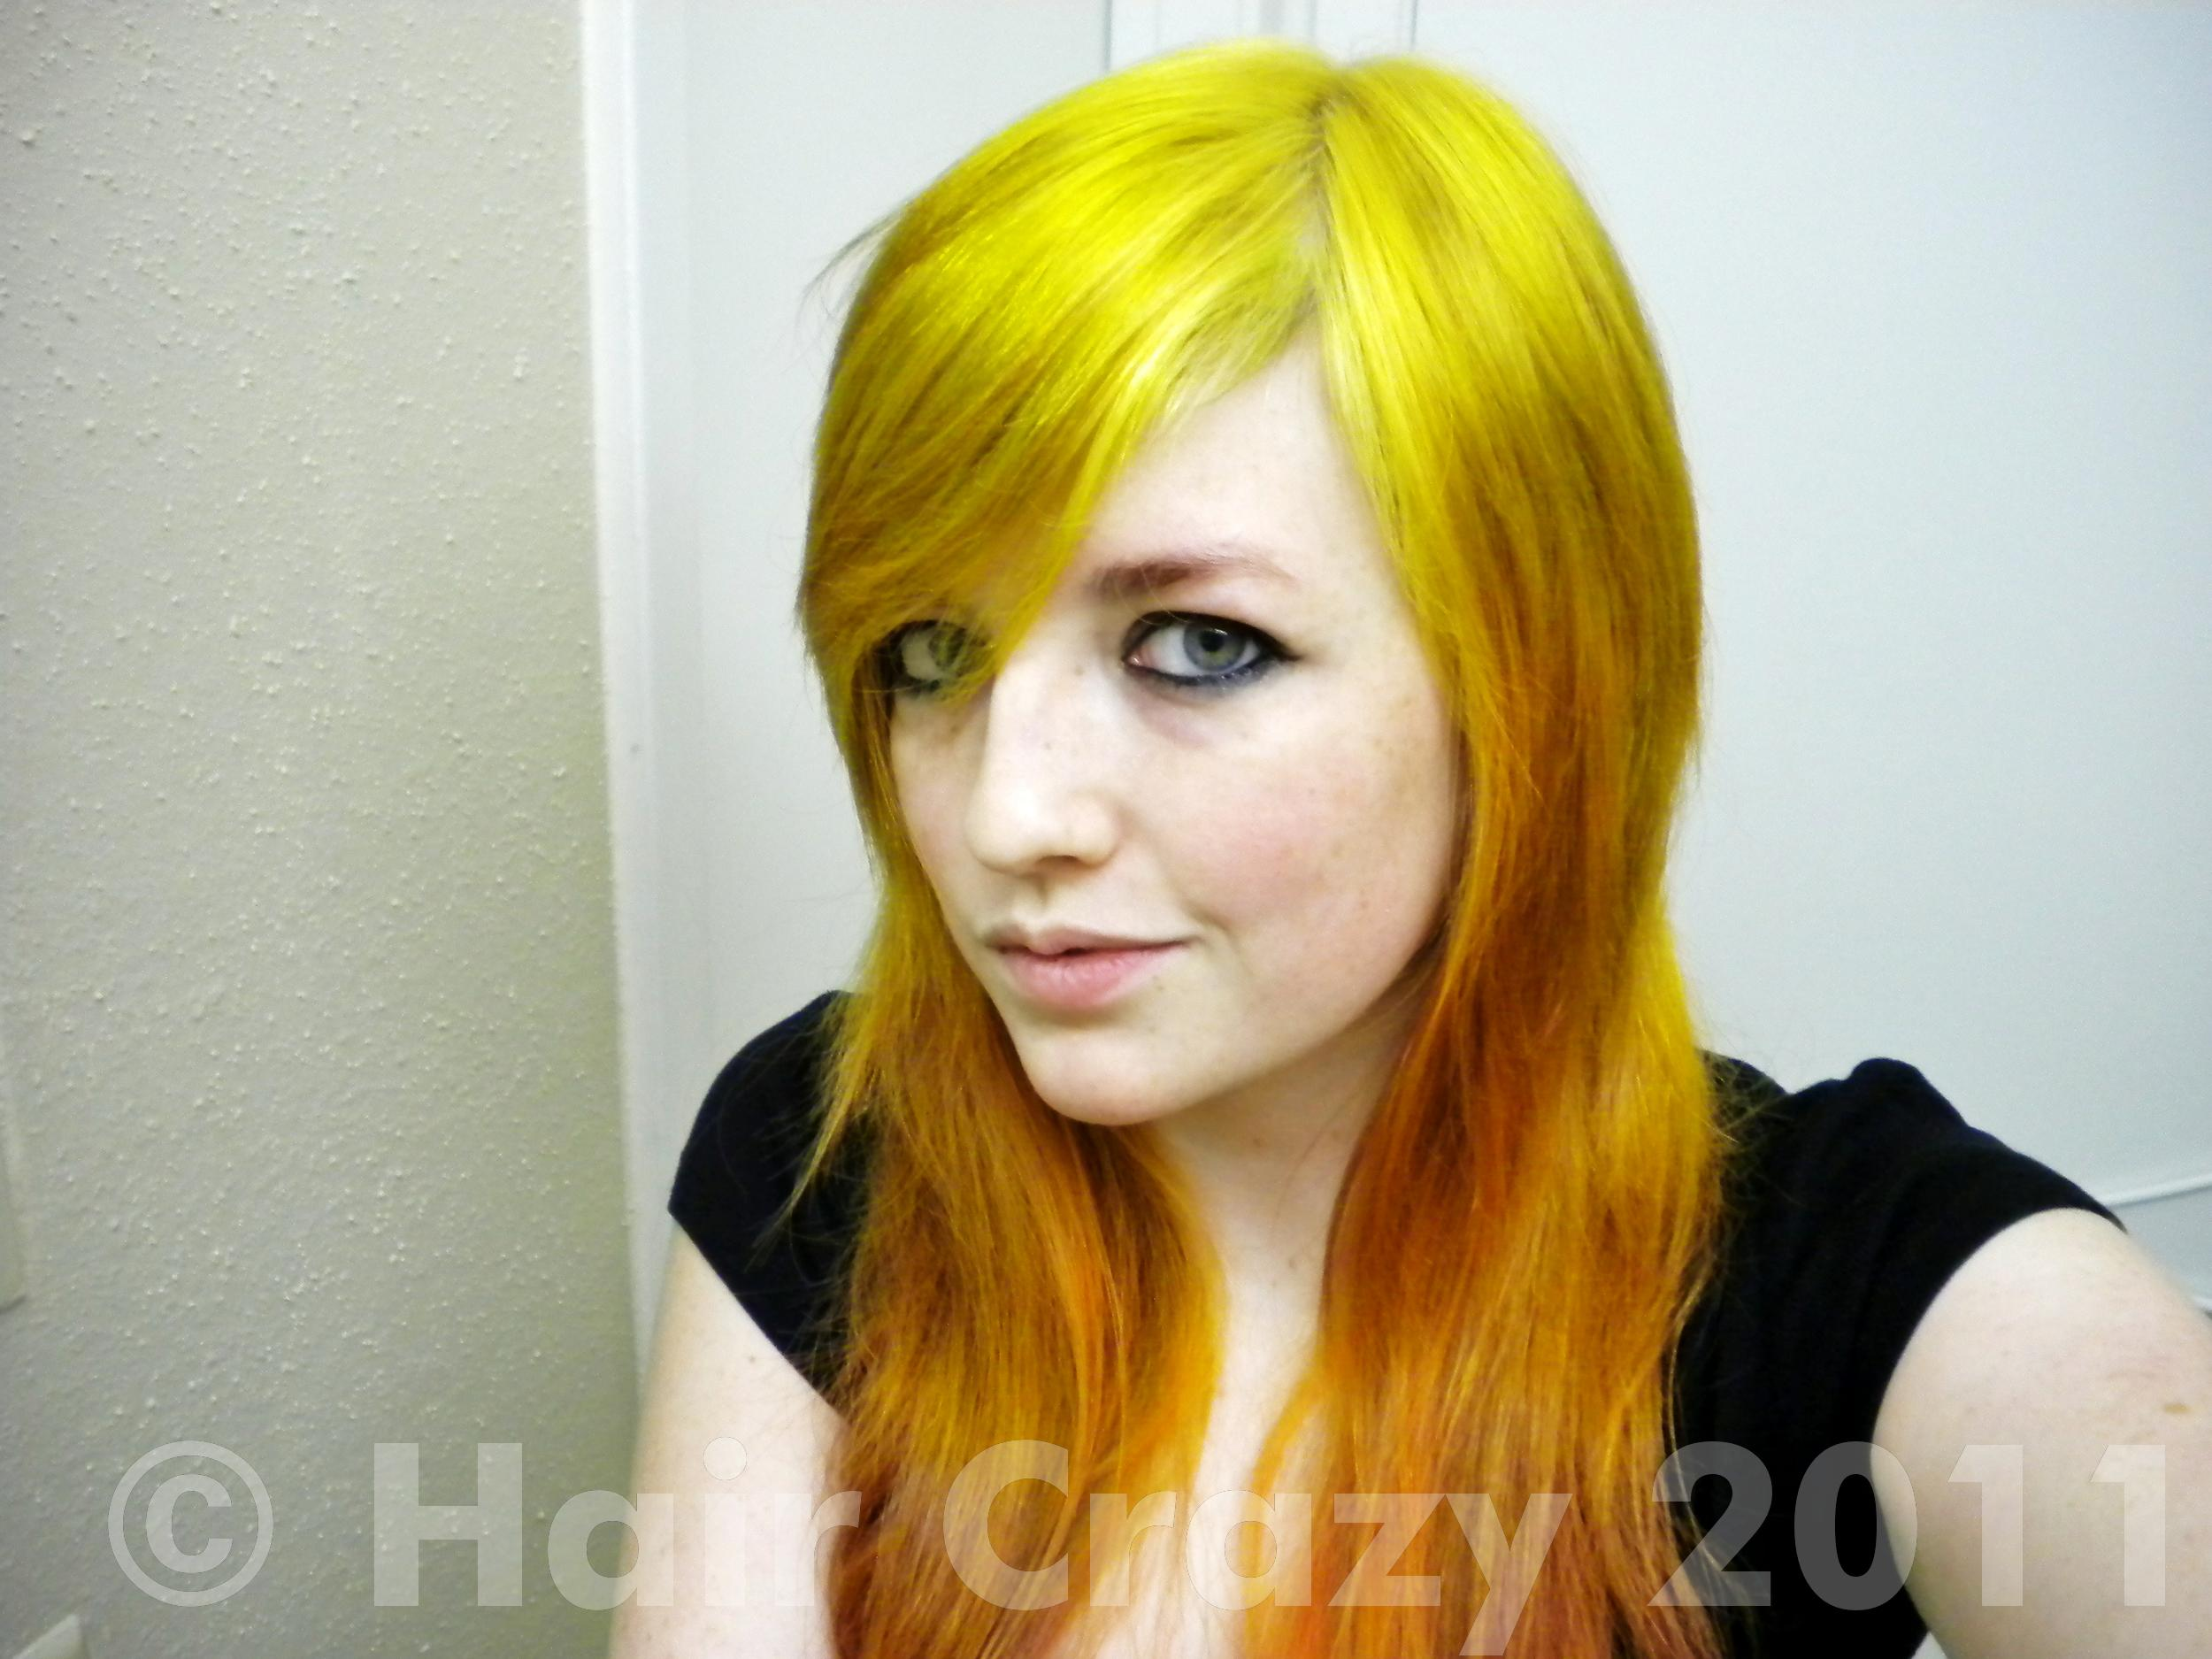 Red, Orange, and Yellow hair! - Forums - HairCrazy.com